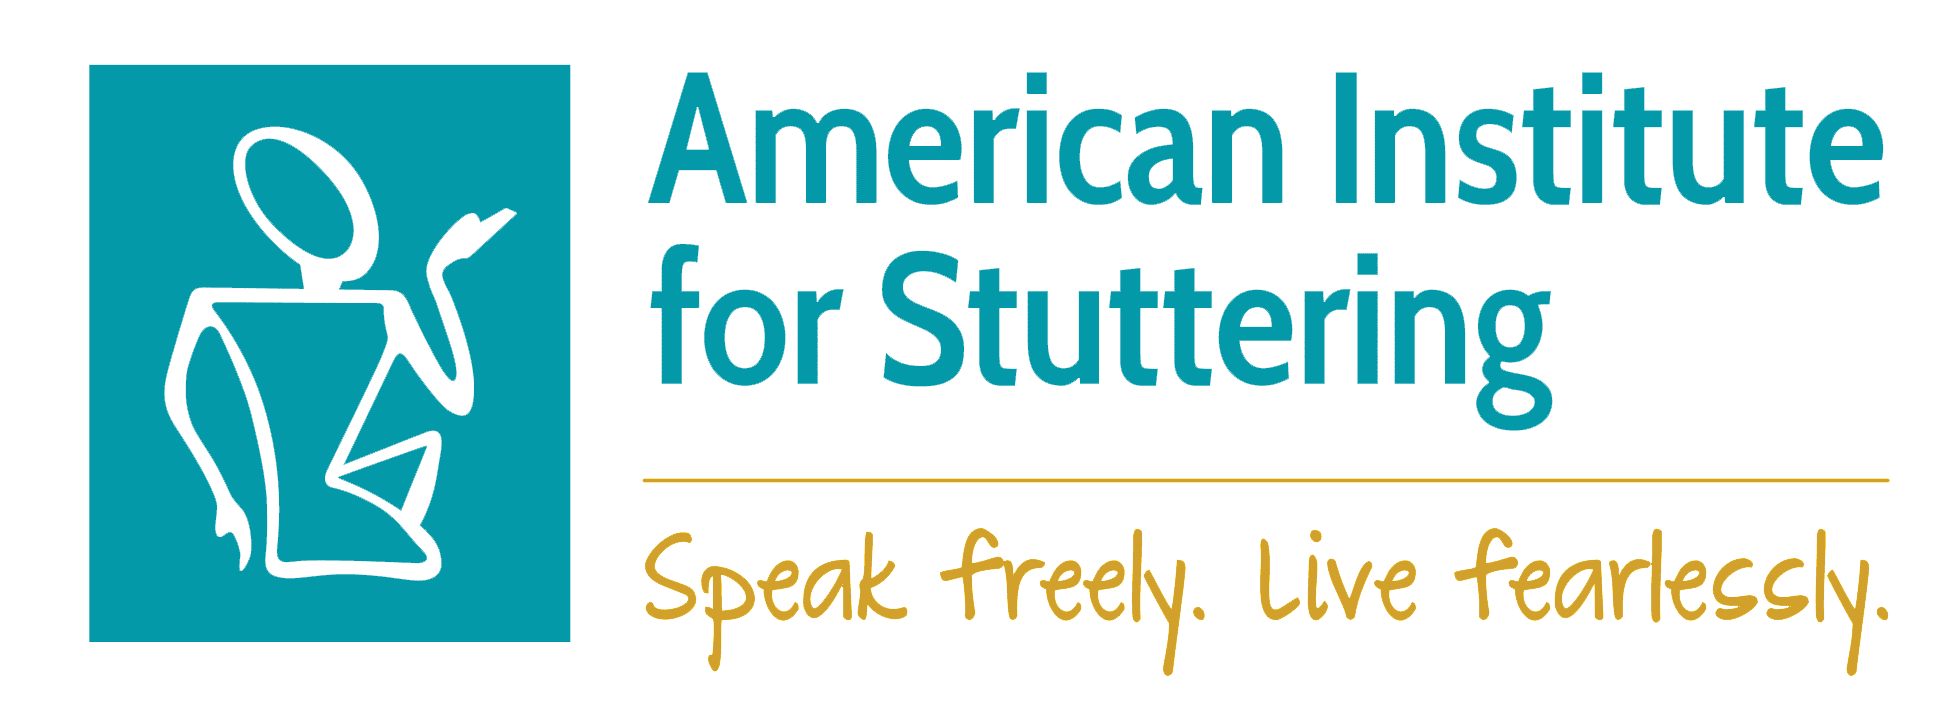 Arthur M. Blank Center for Stuttering Therapy